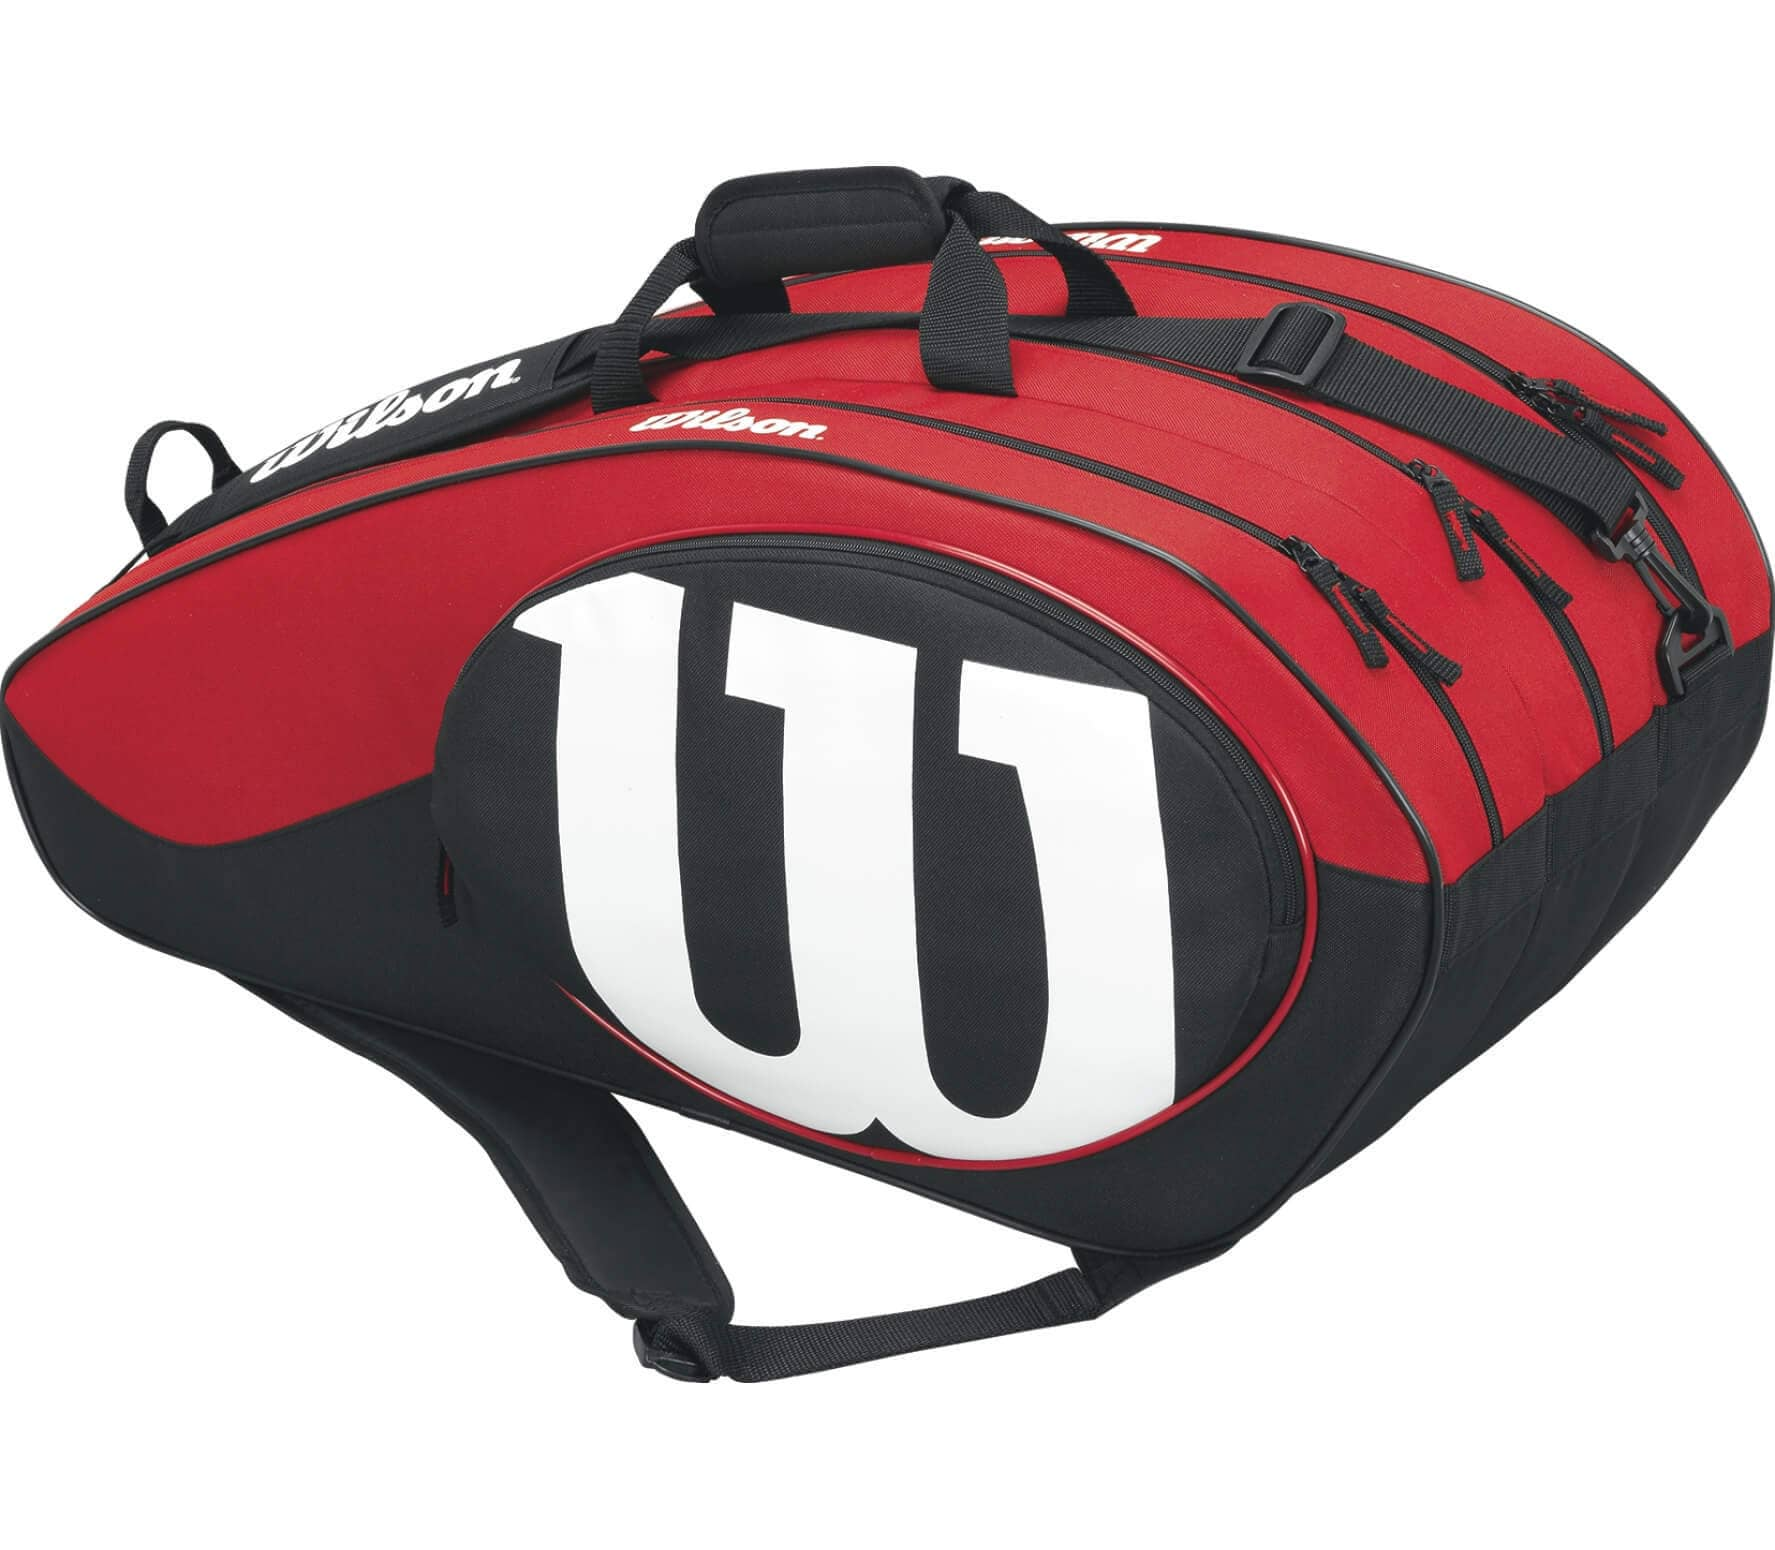 658e309e20 Wilson - Match II 12 Pack tennis bag (black red) - buy it at the ...